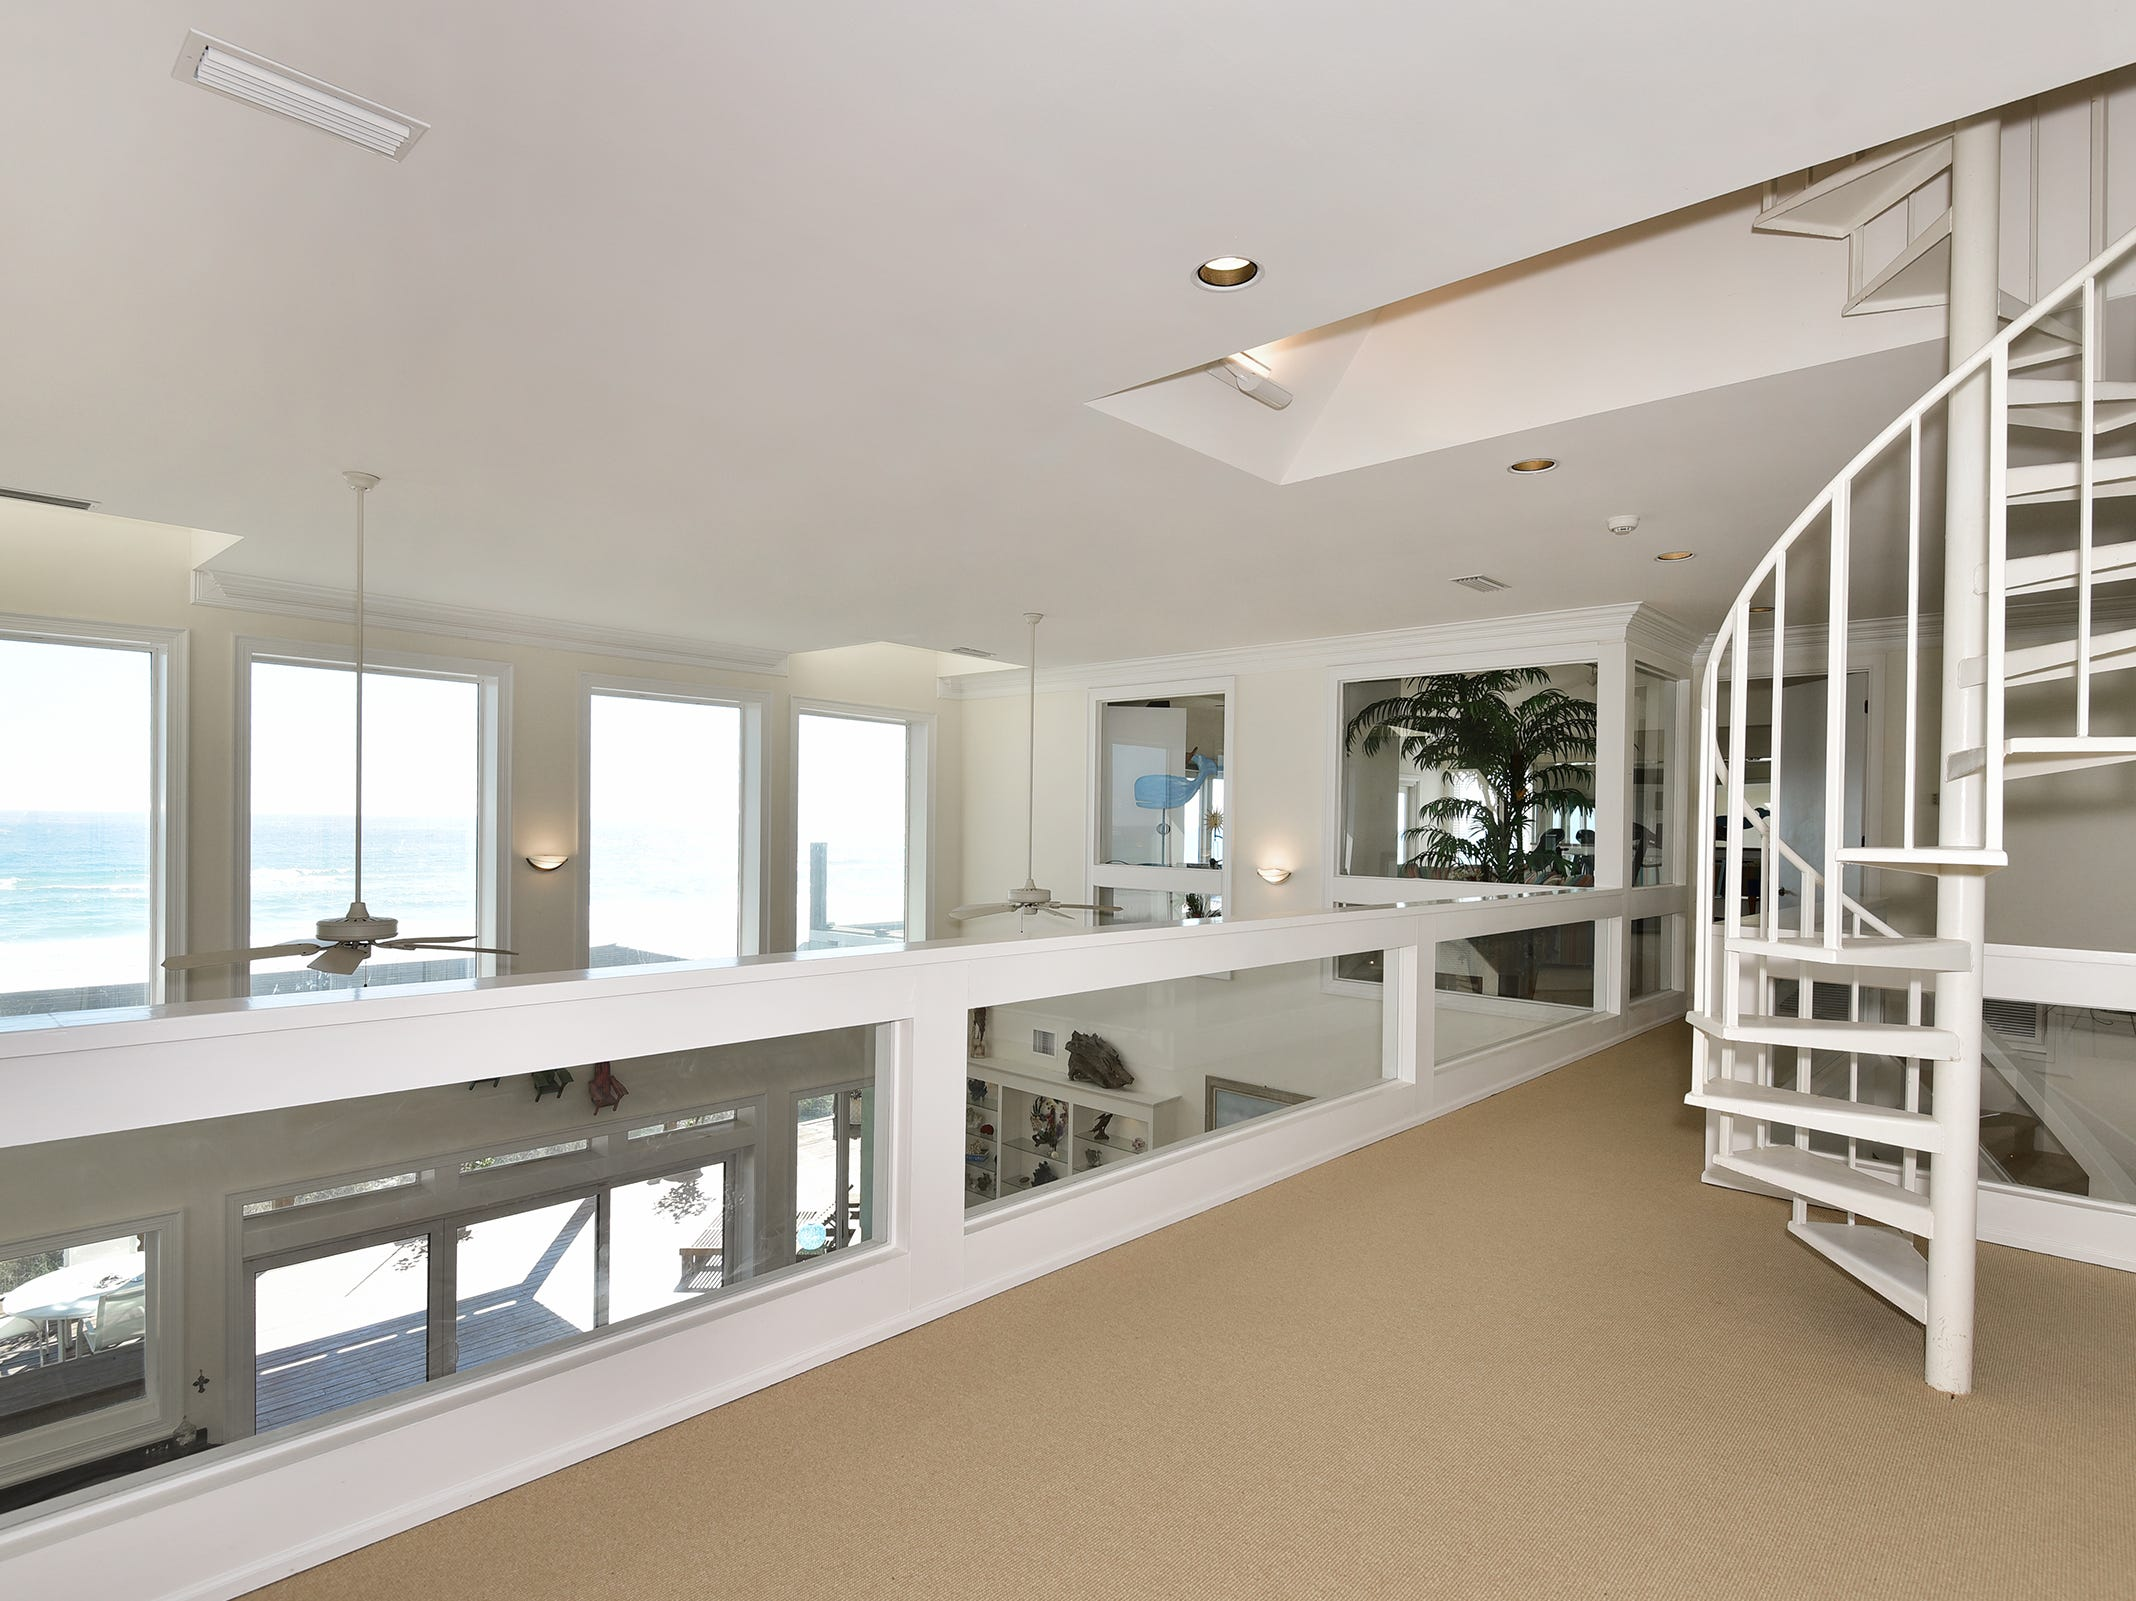 28 Calle HermosaThe upstairs overlooks the Gulf and offers access to the crow's nest.